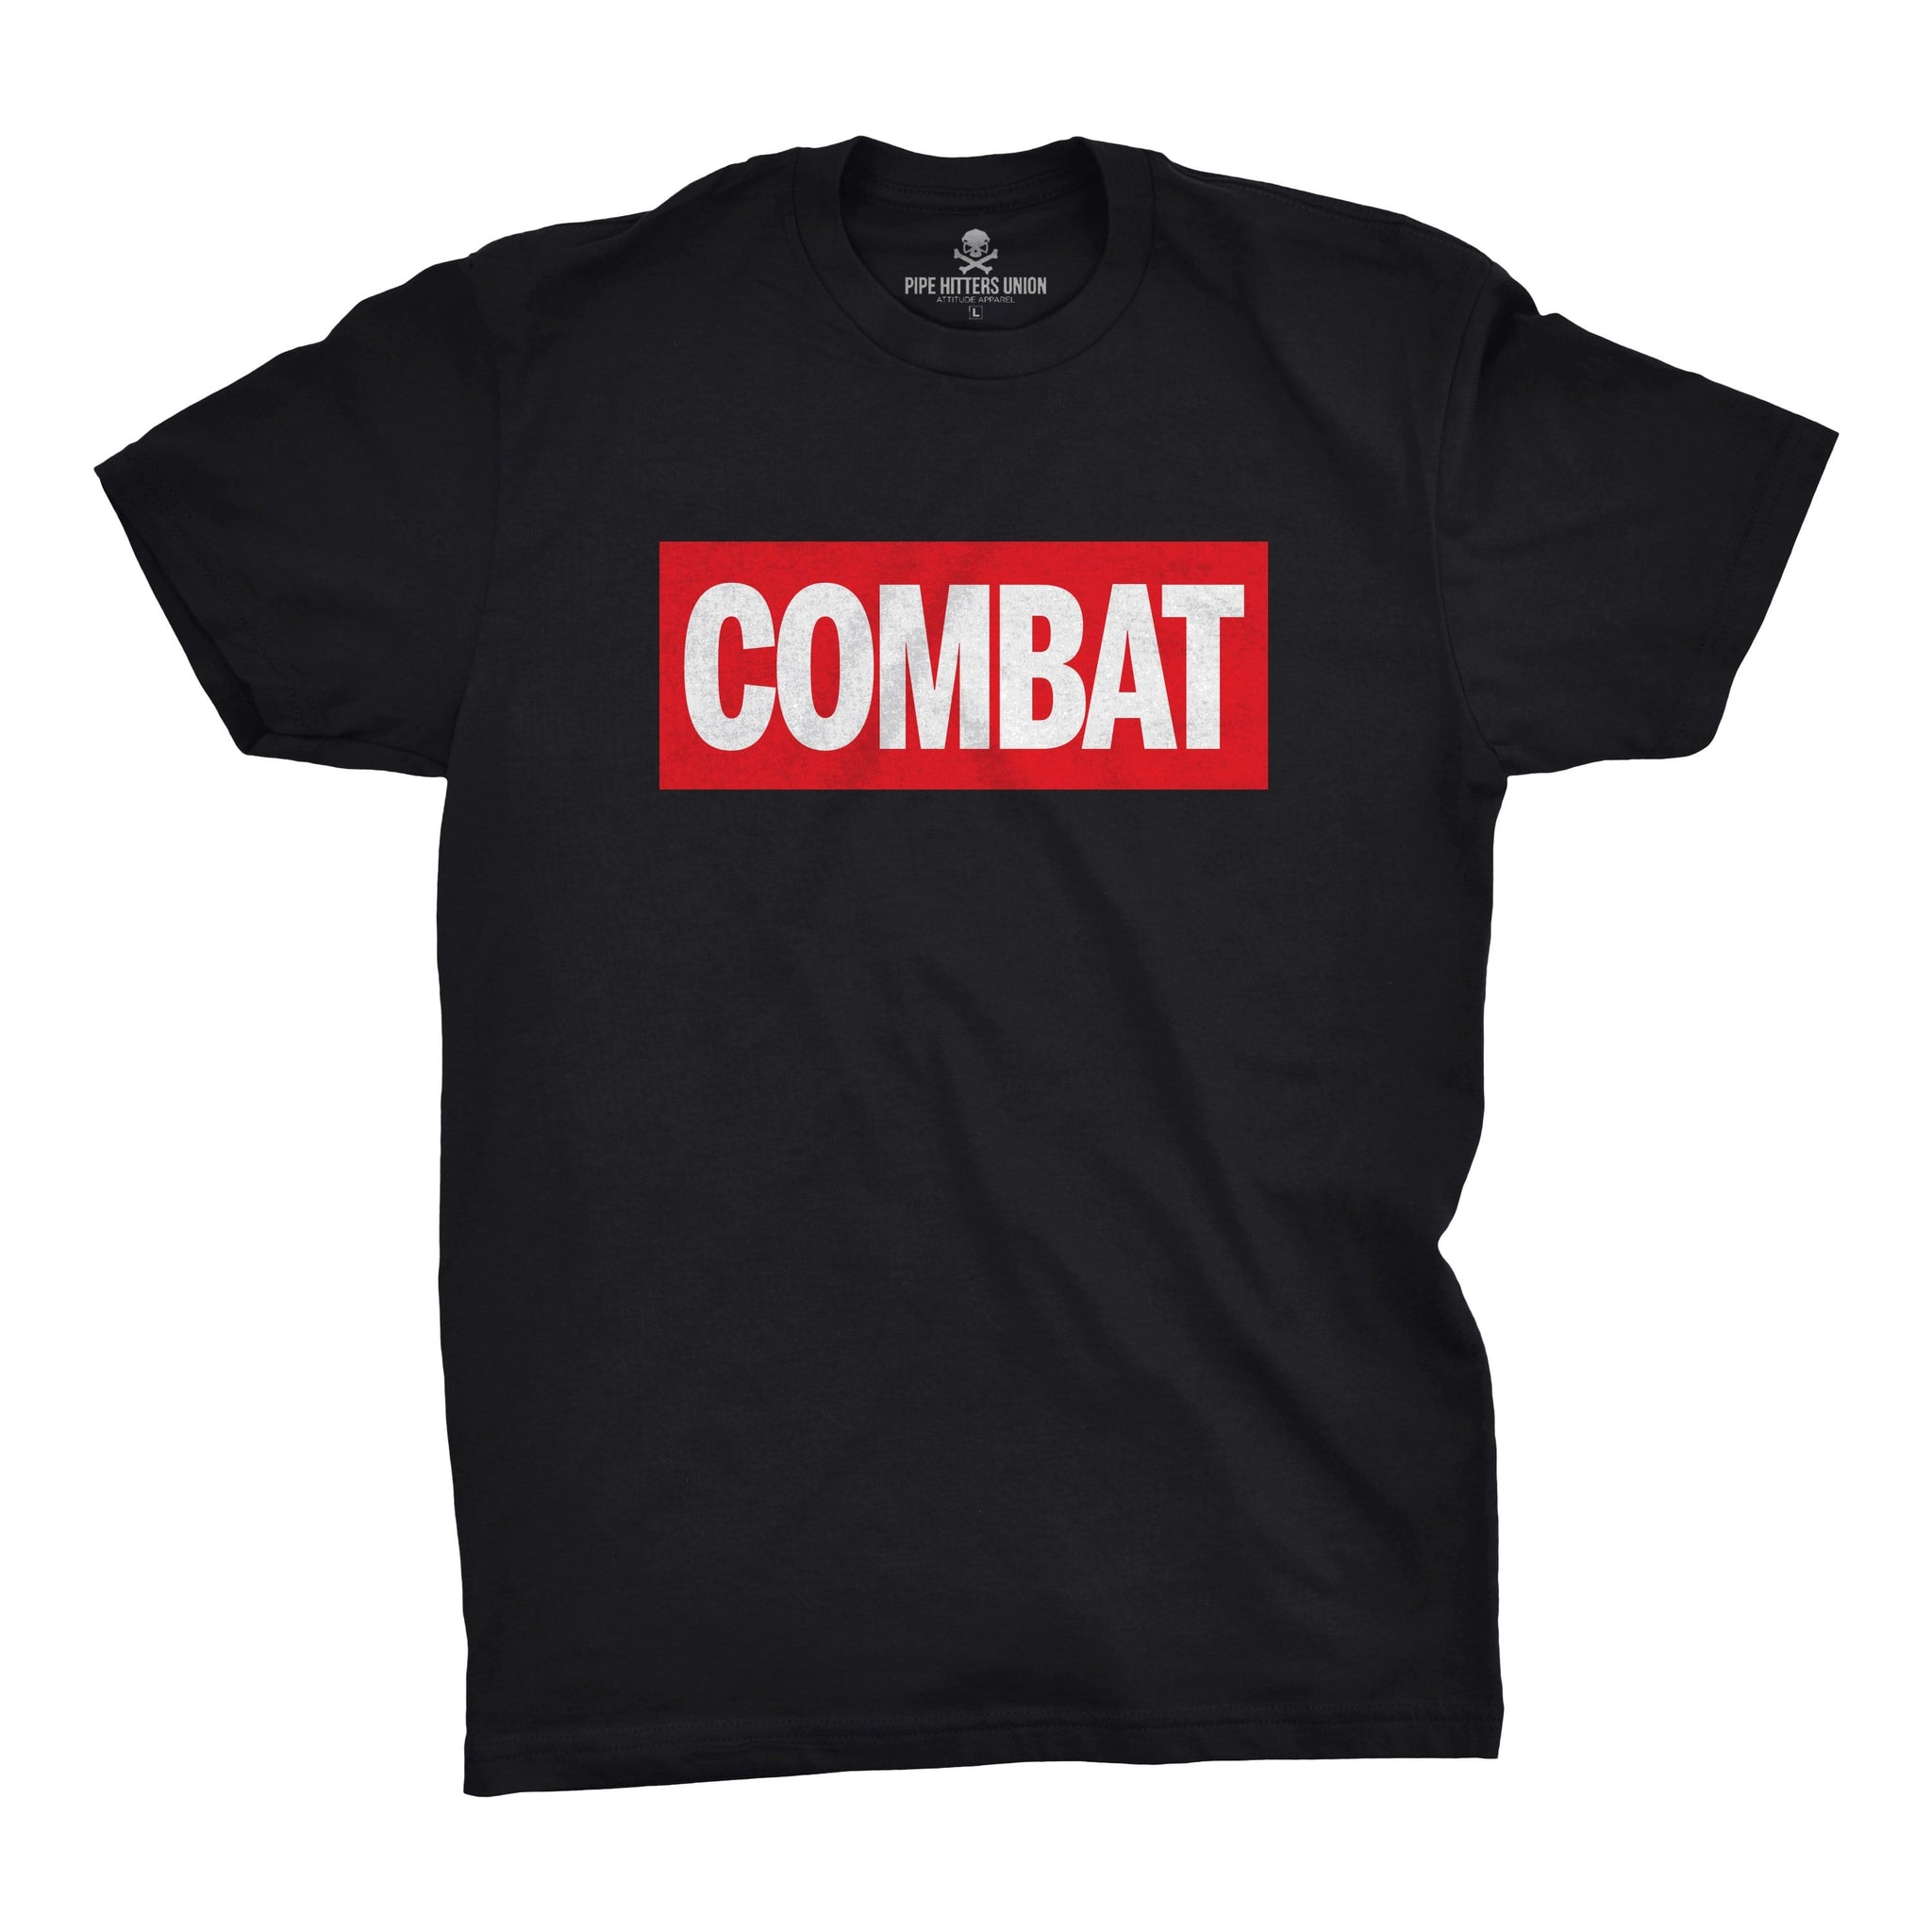 Combat - Black - T-Shirts - Pipe Hitters Union